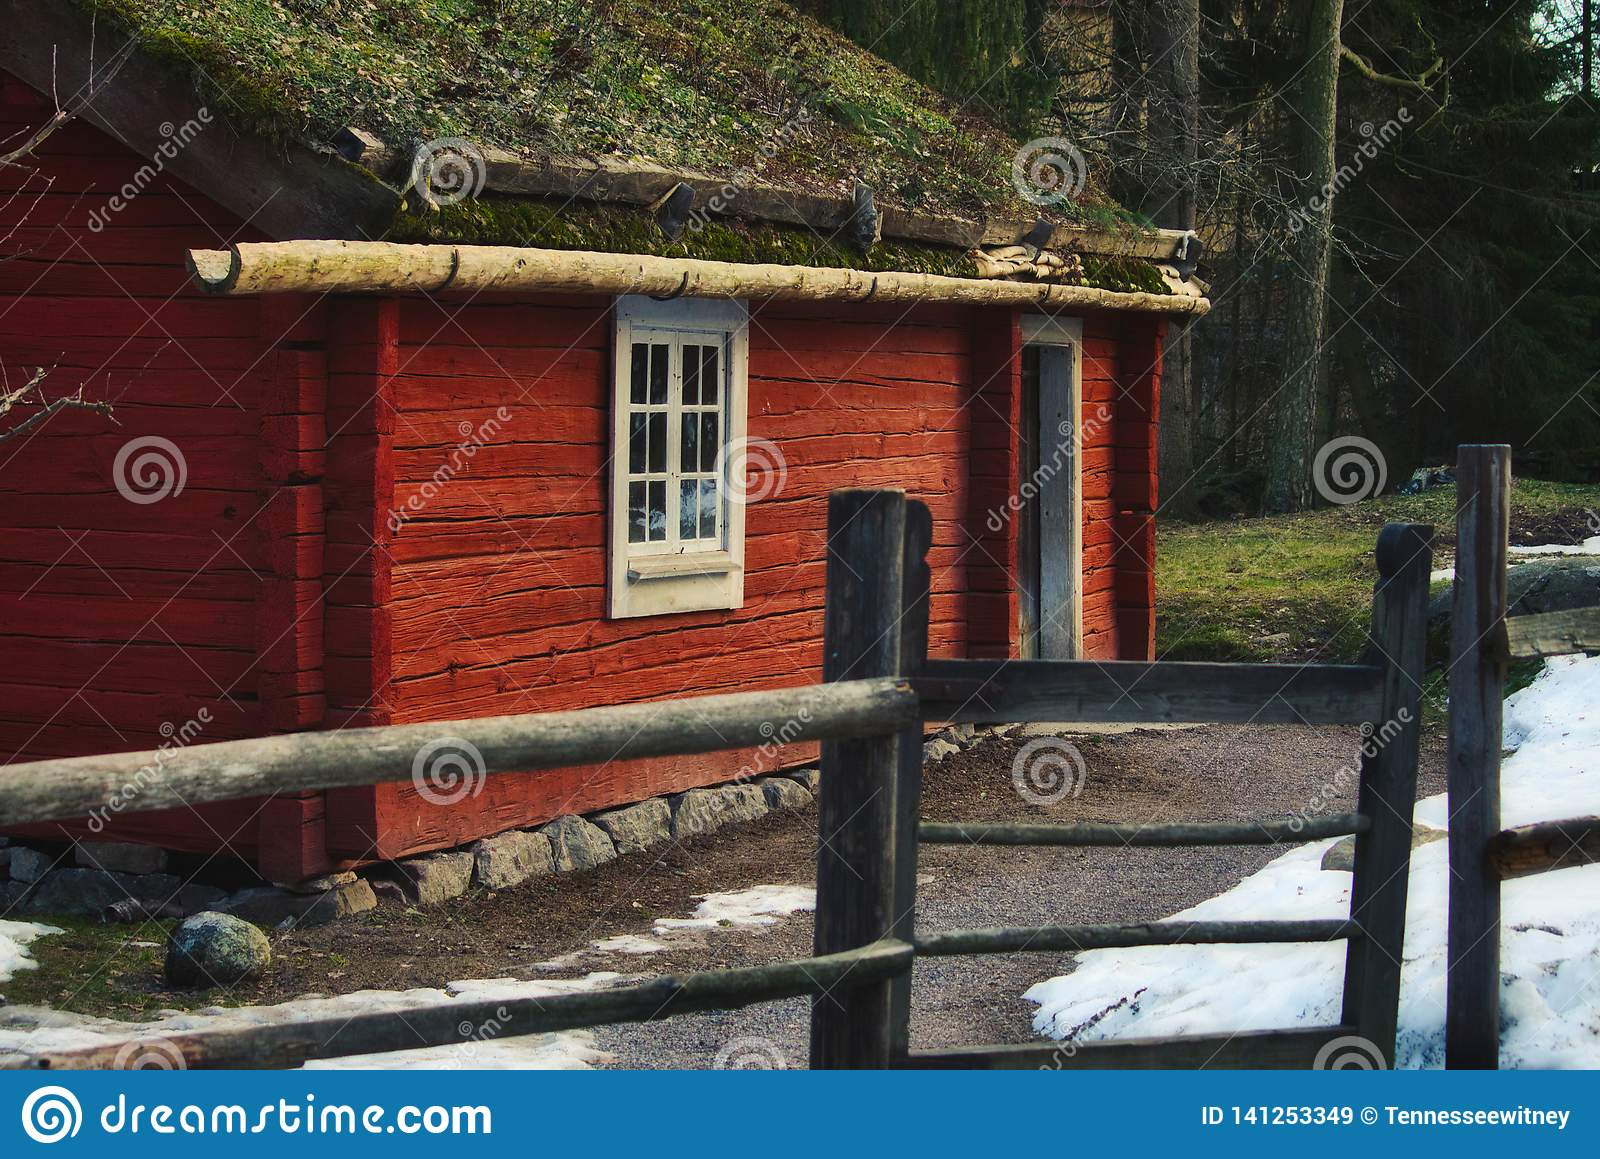 Old quaint vintage wood cabin in the forest painted red